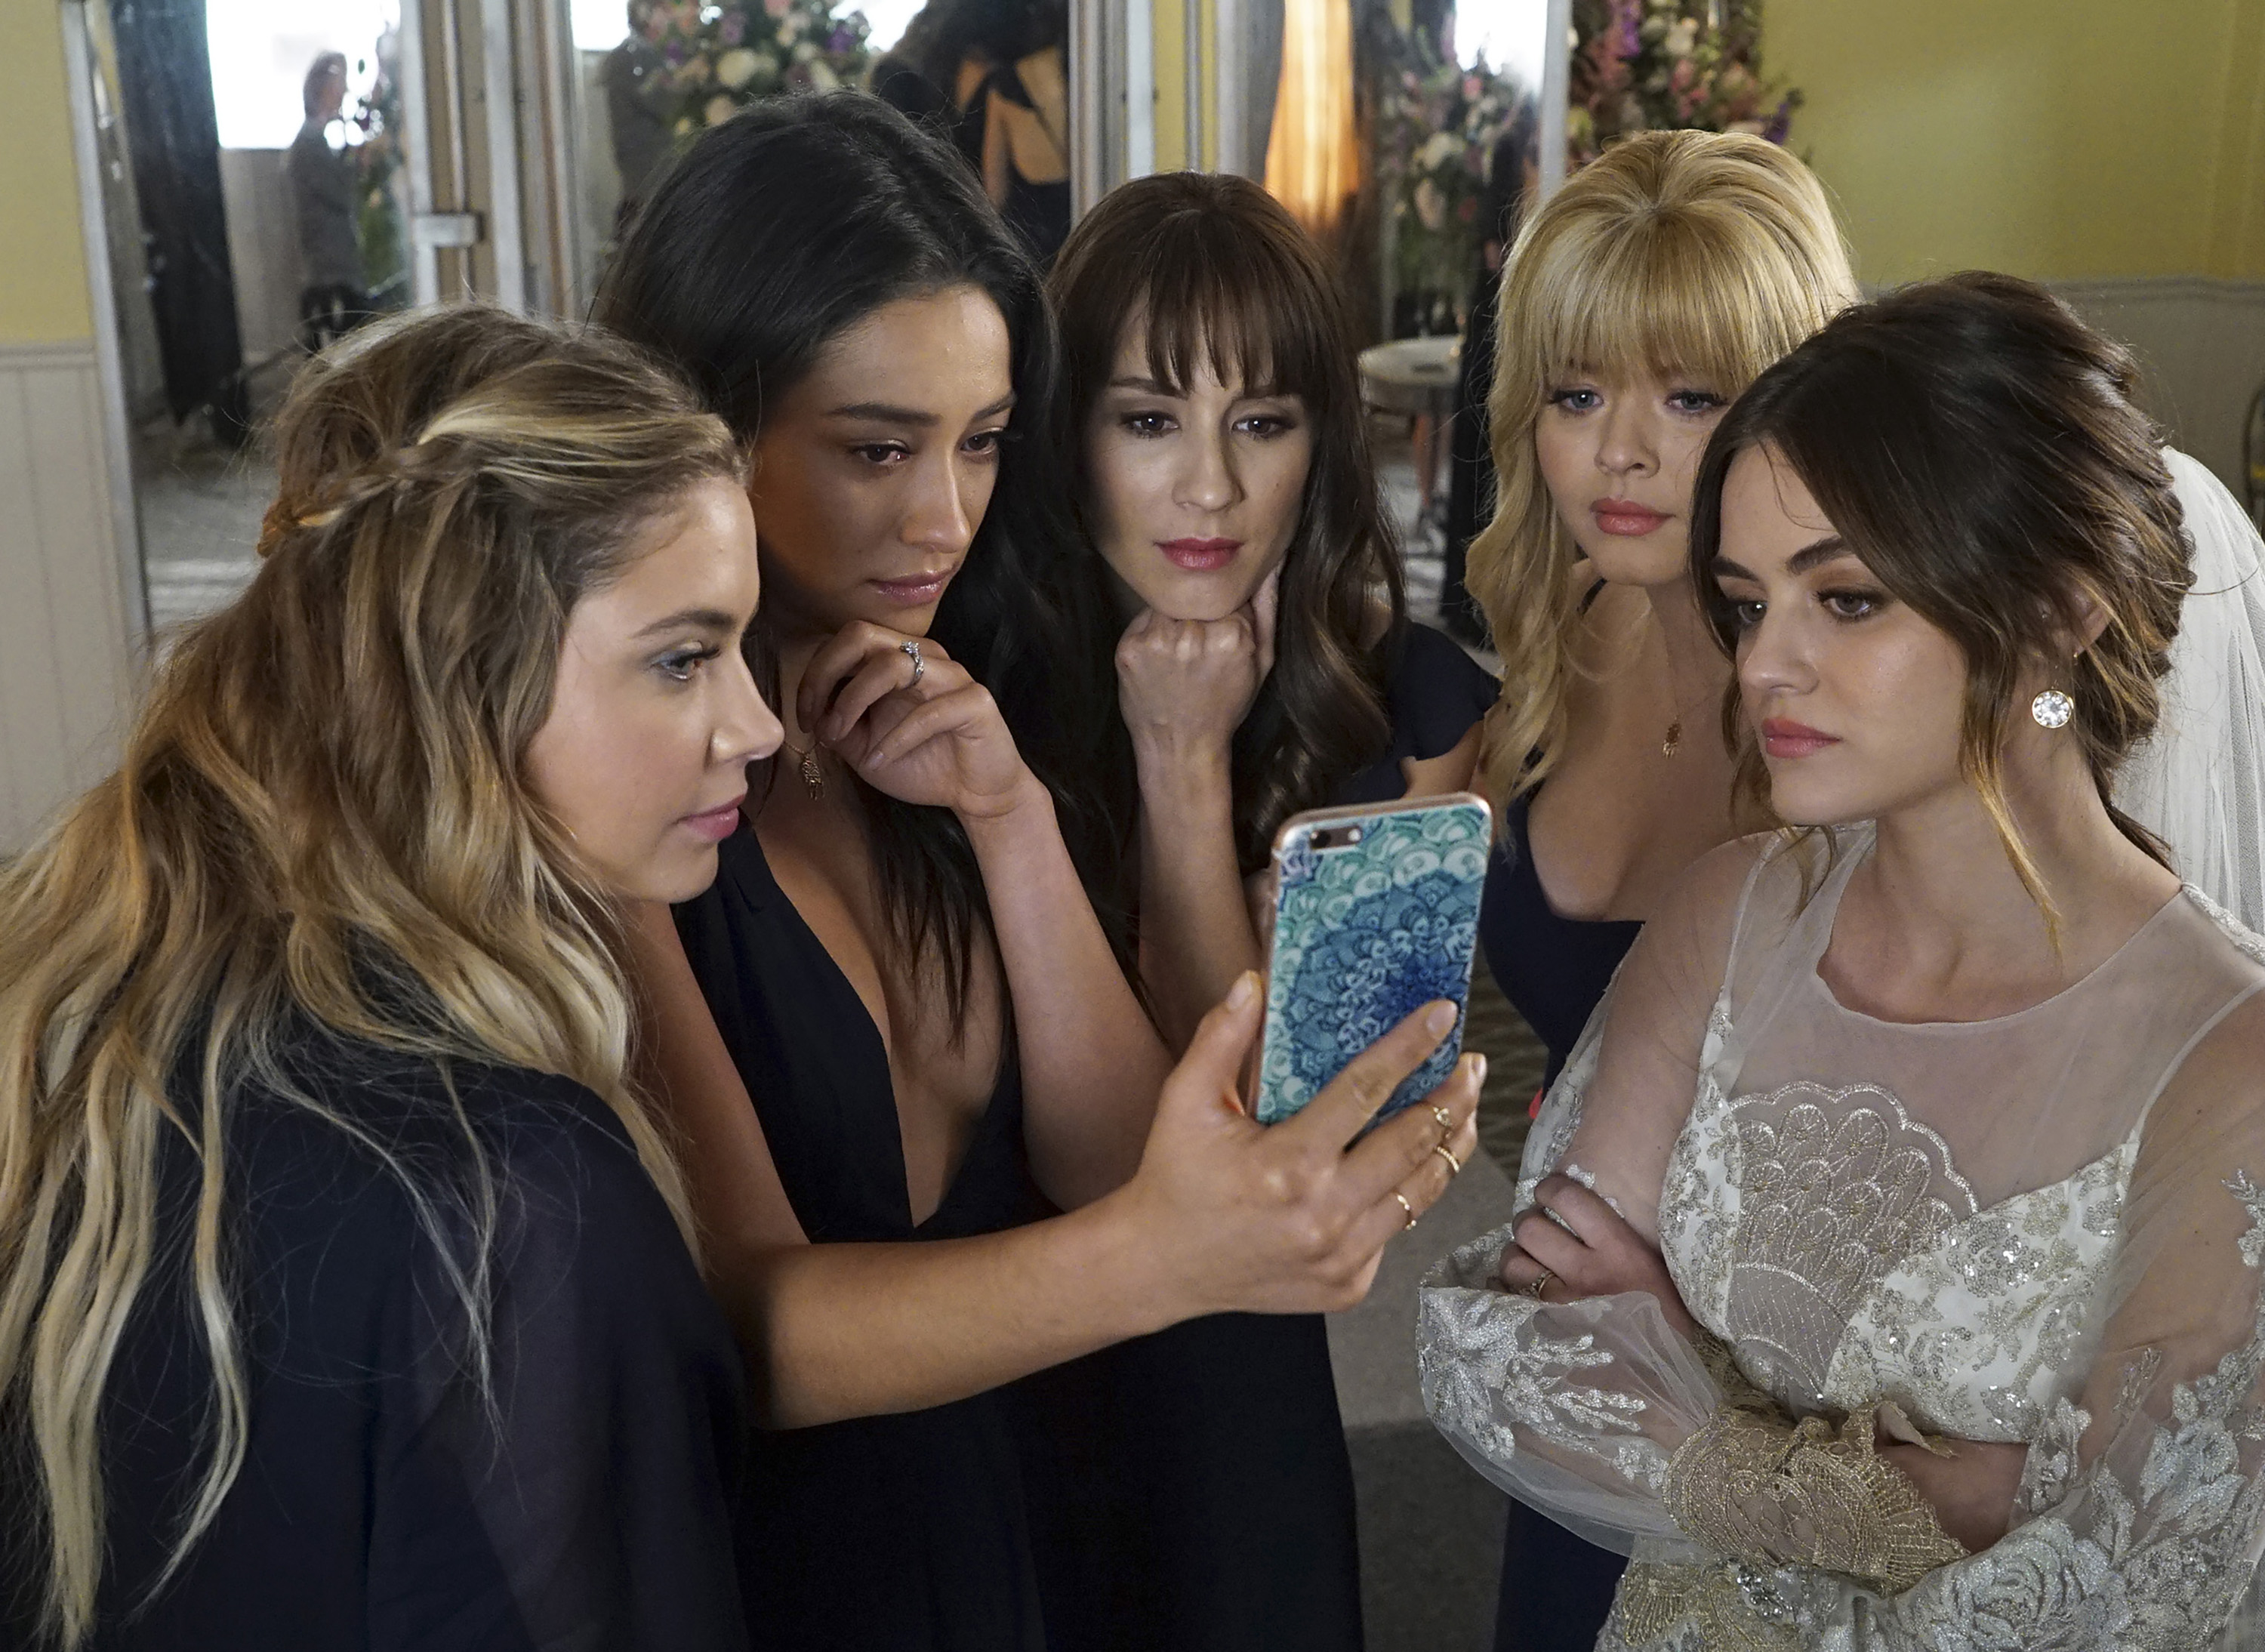 Pretty Little LIars finale most tweeted about TV episode of 2017